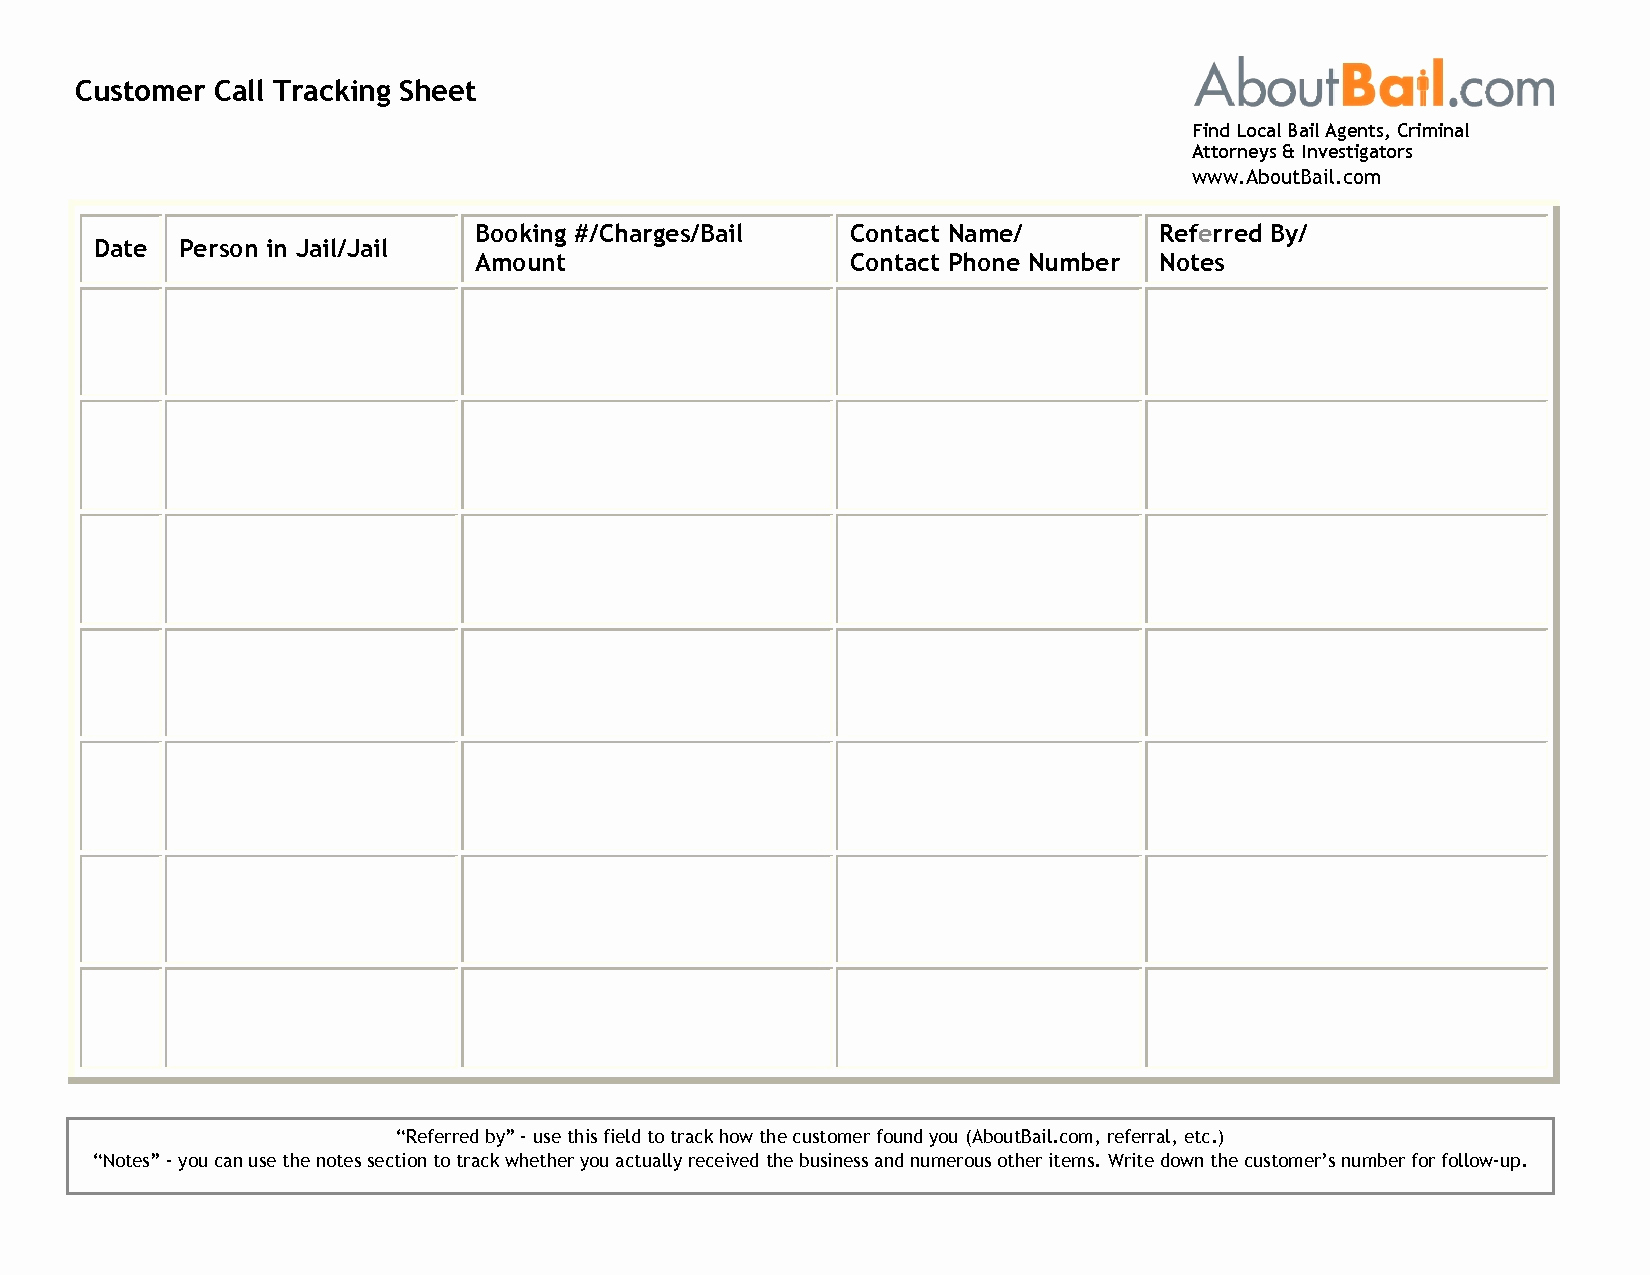 Tracking Sales Calls Spreadsheet Lovely Sales Calls Tracking With Sales Call Tracking Spreadsheet